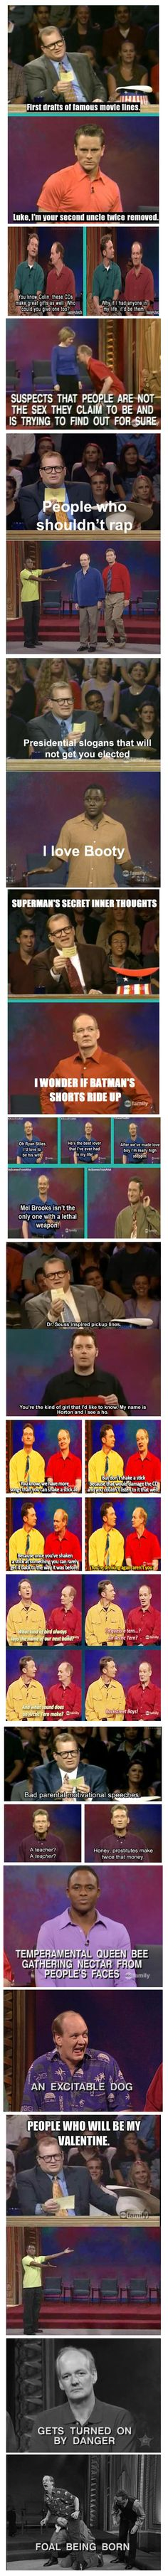 Some of the Best Moments from Whose Line Is It Anyway | I Think My Moms Gone CrazyI Think My Moms Gone Crazy